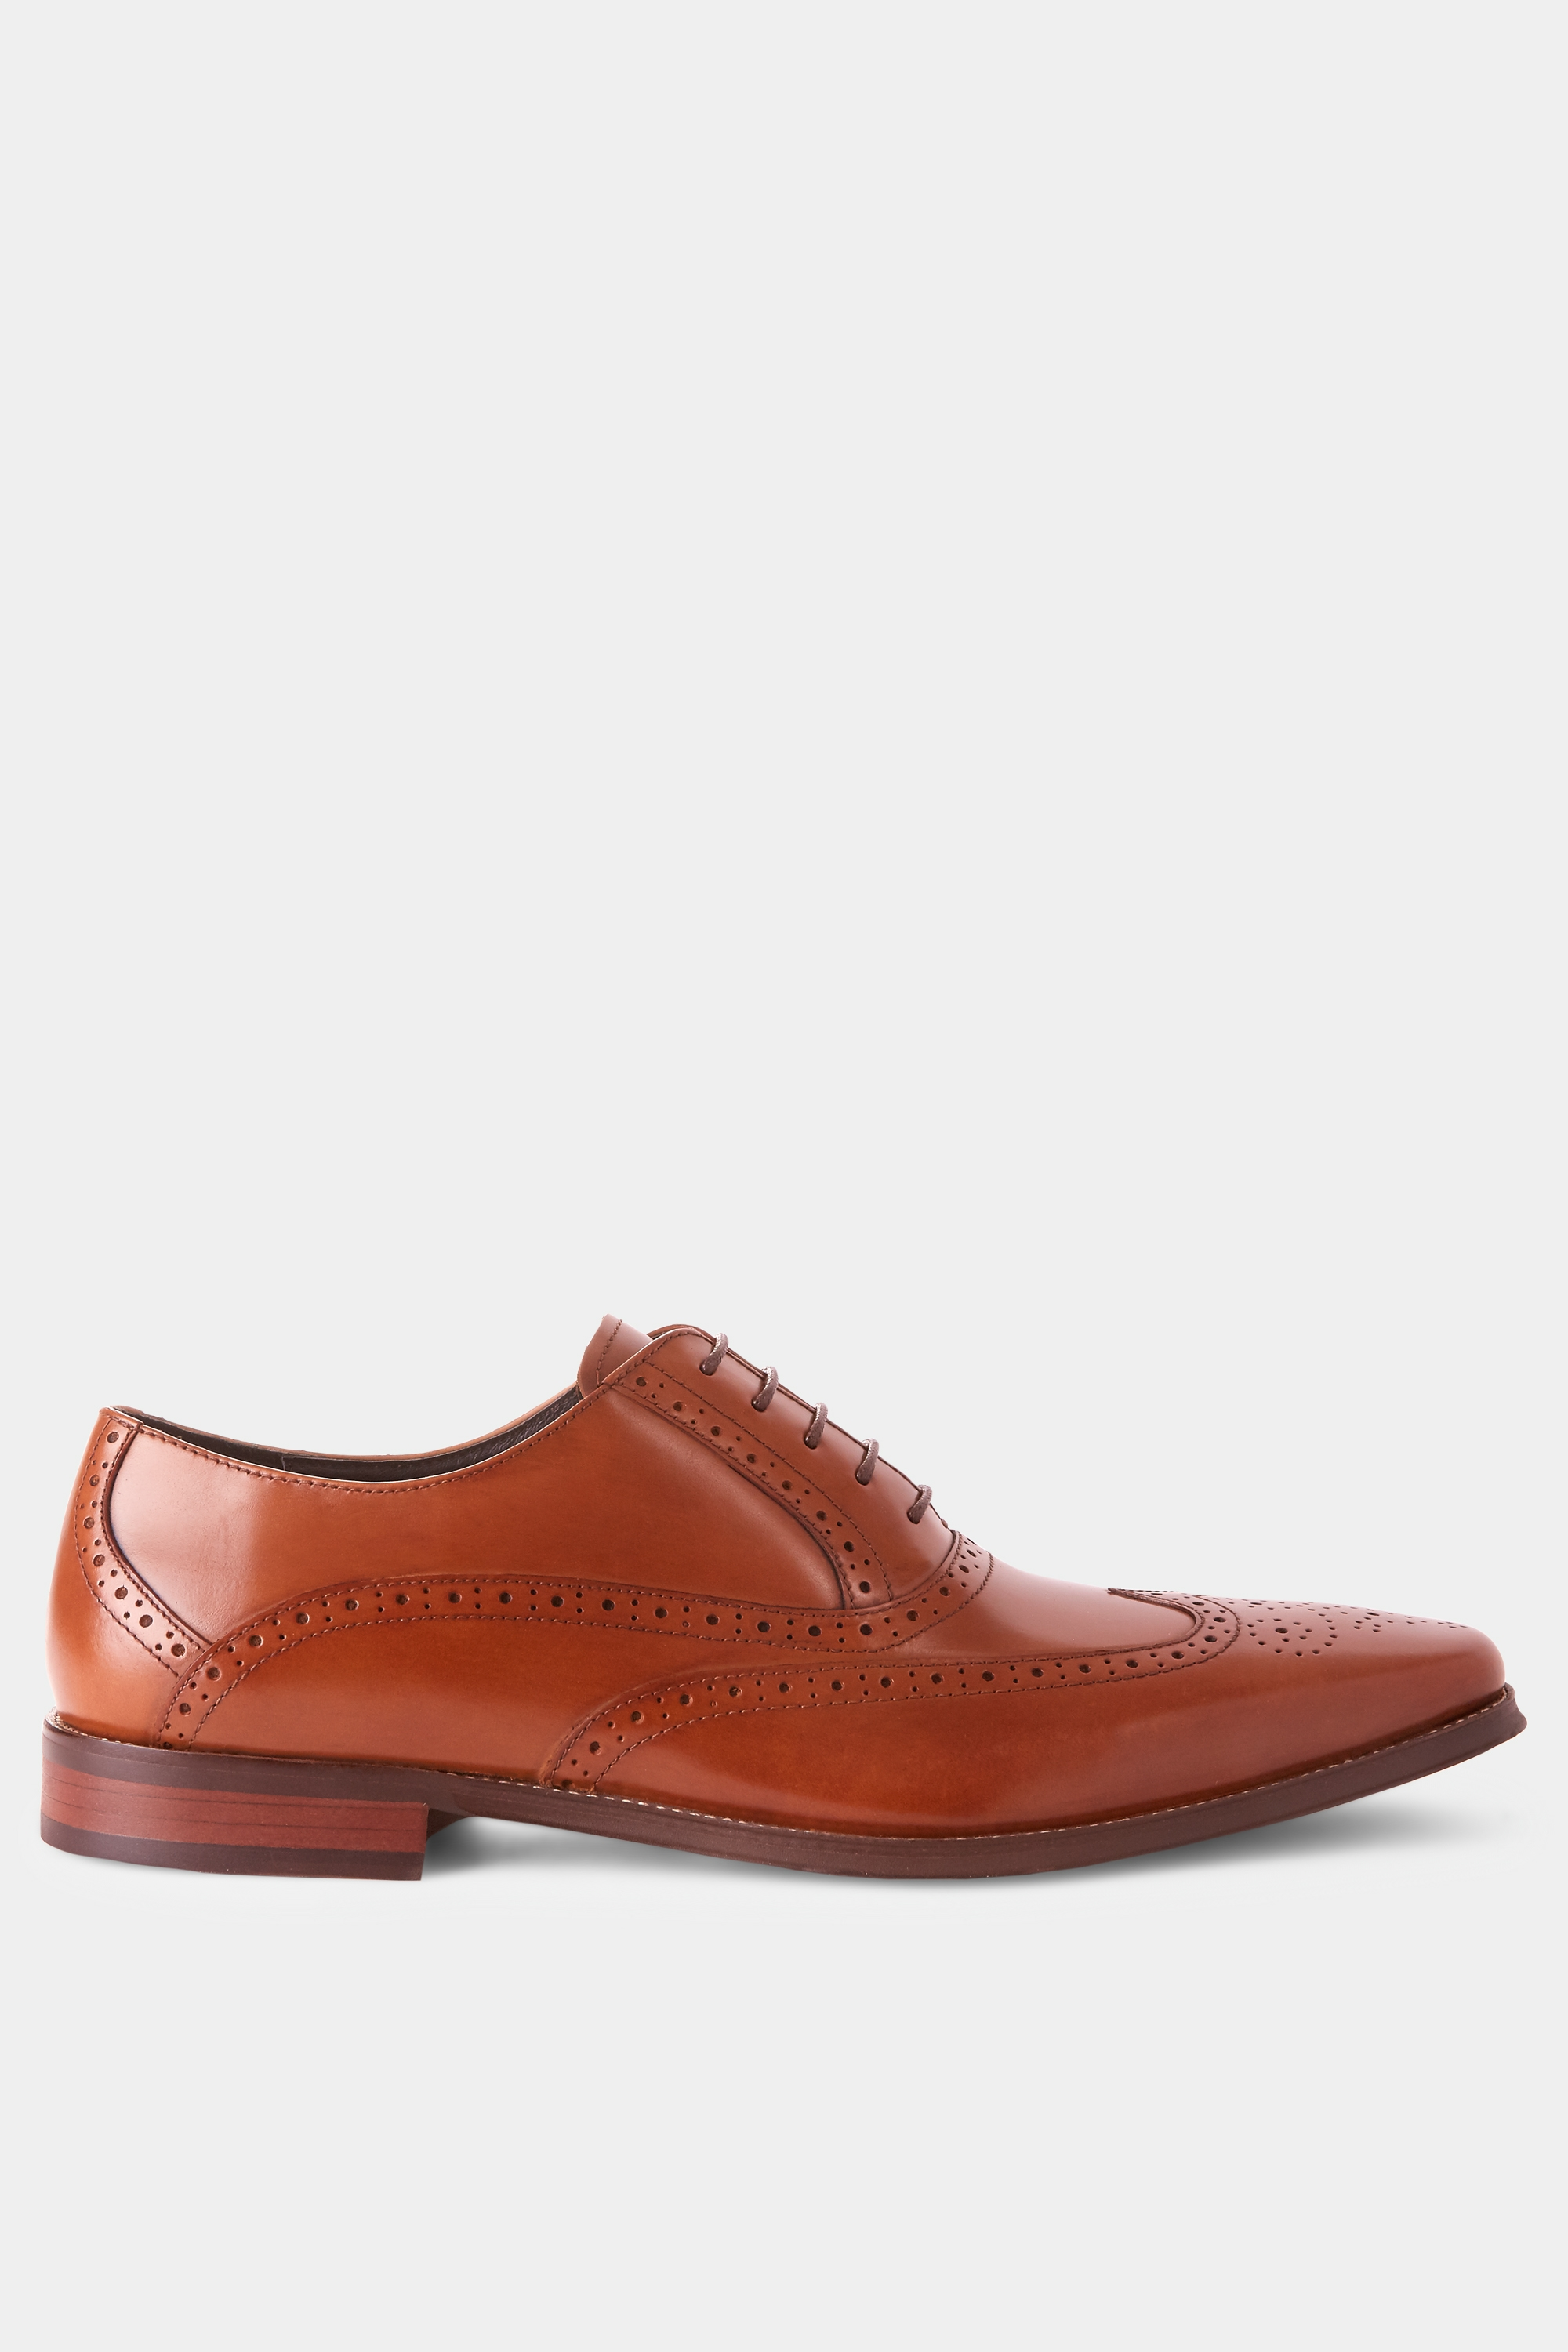 c0250d2cb0d John White Hercules Tan Brogue Shoe